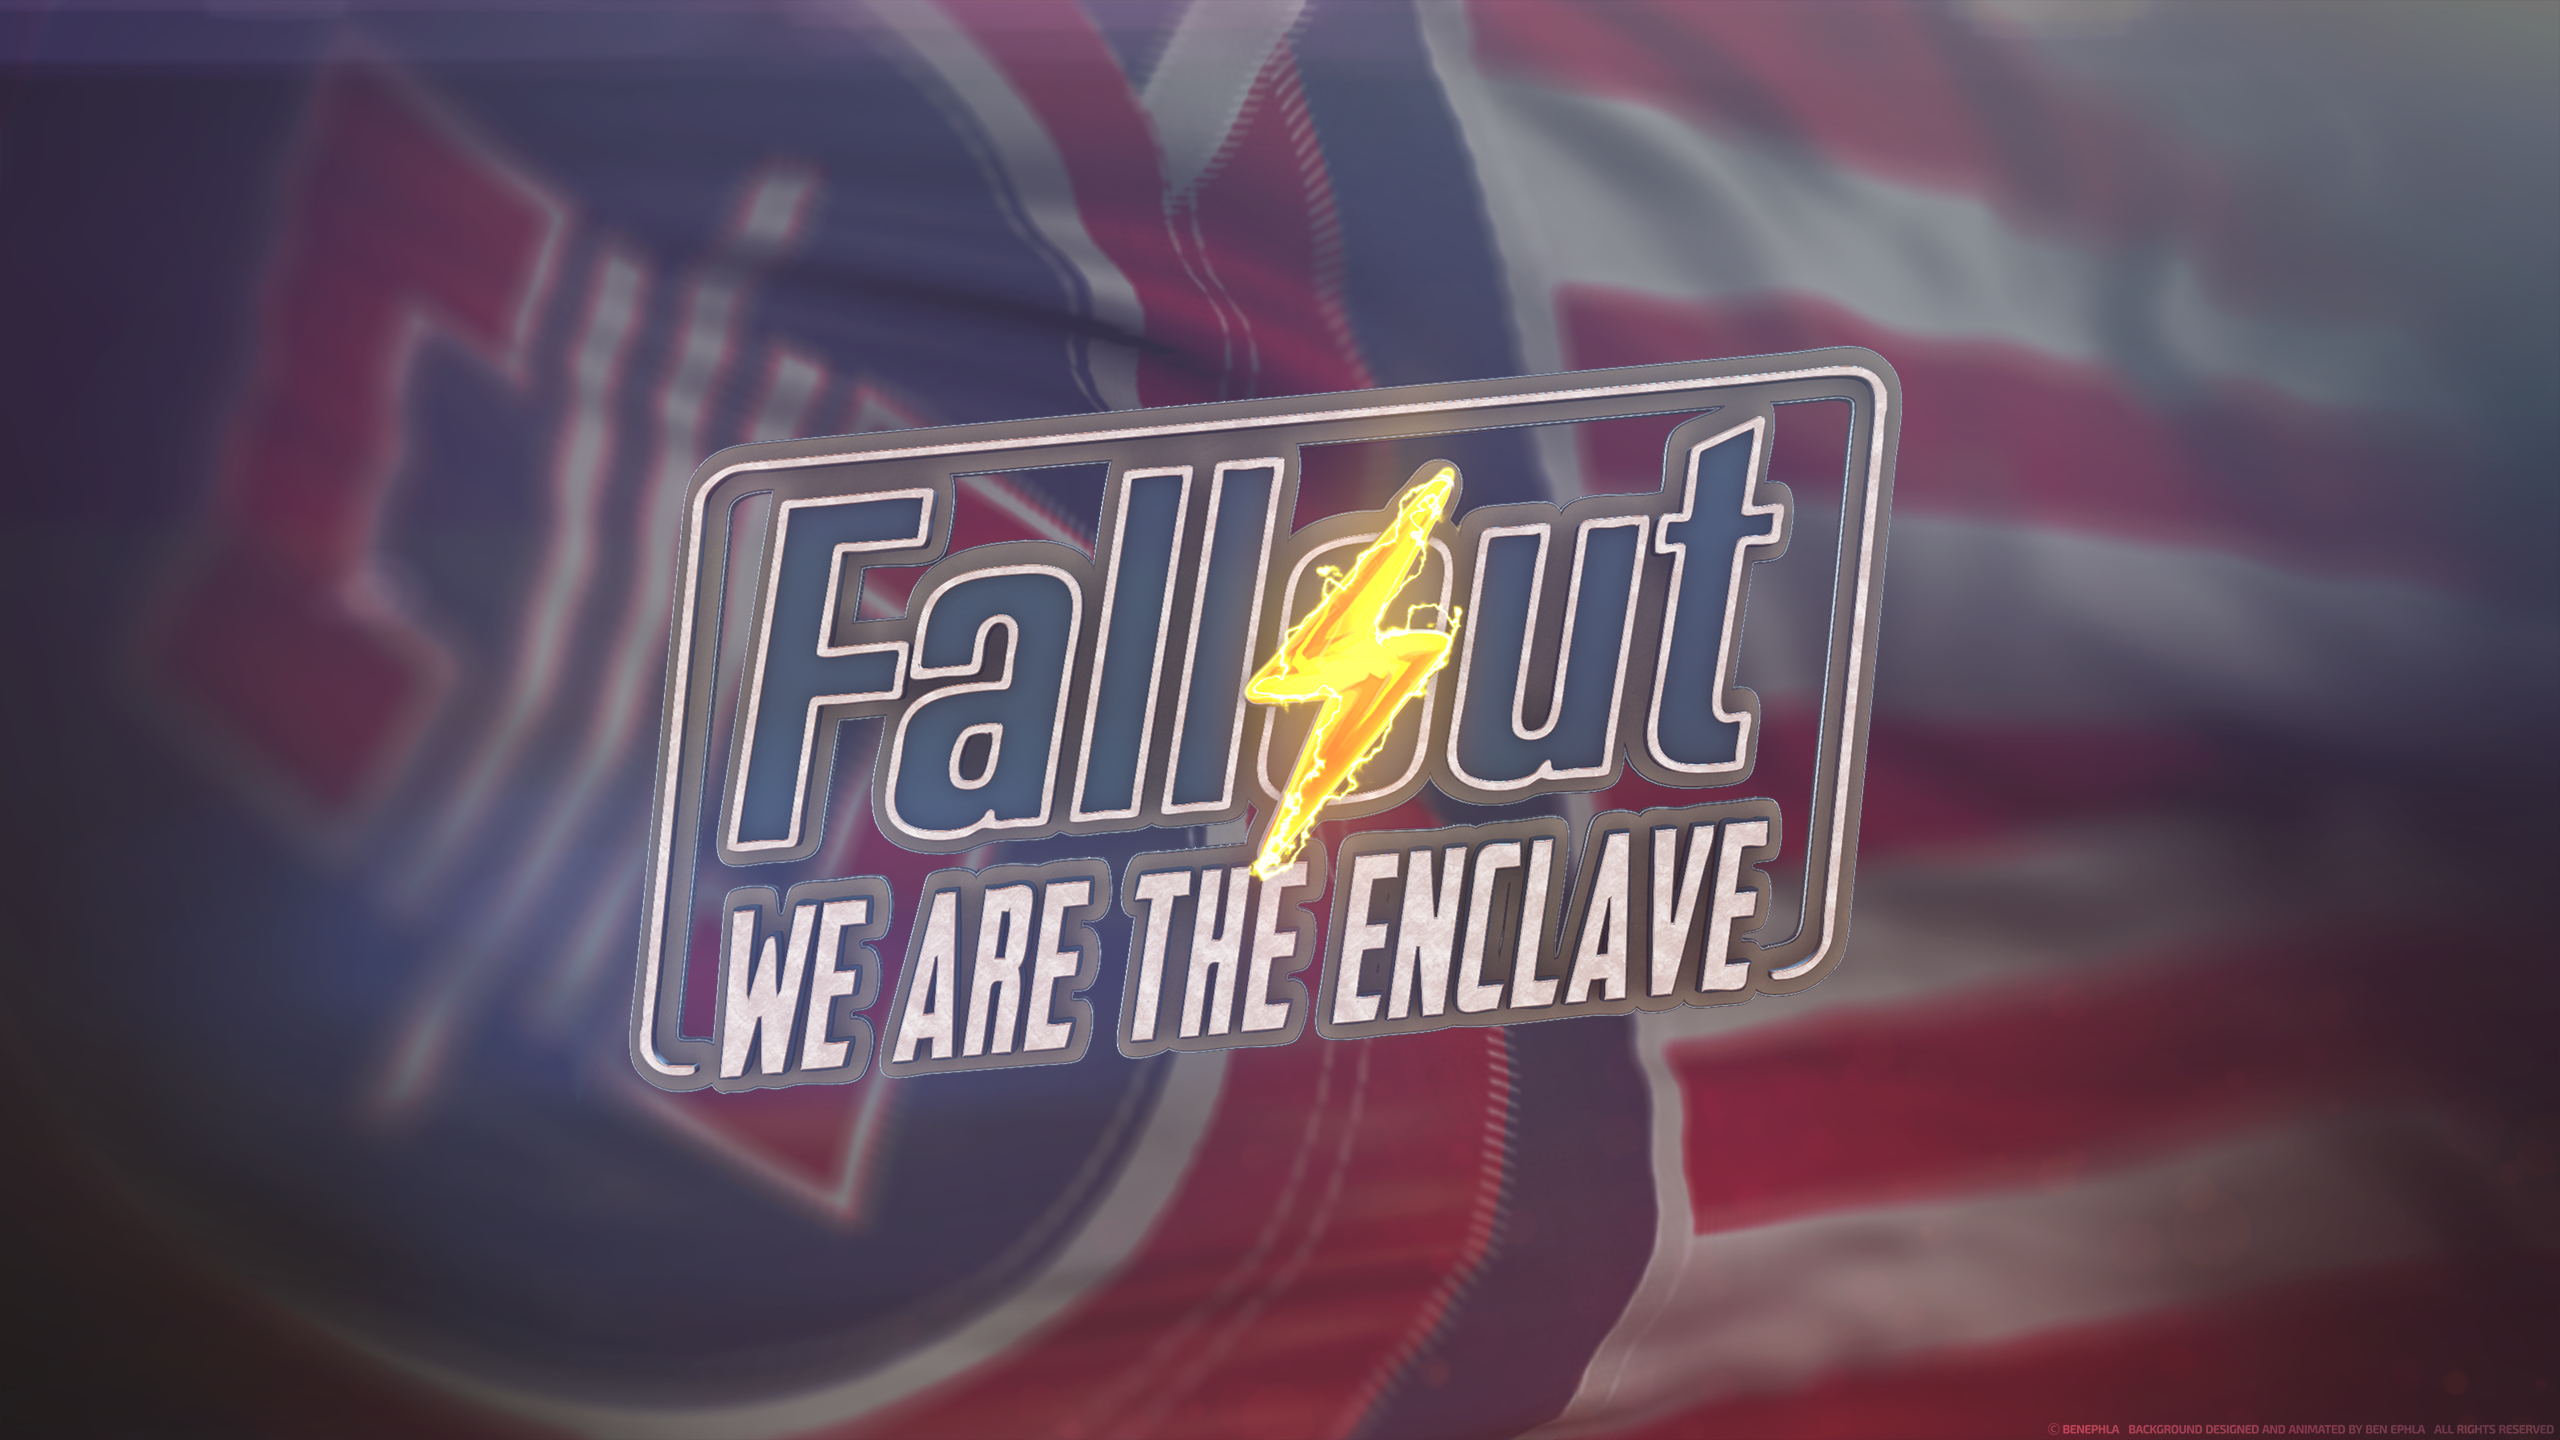 Pin by Ben Ephla on We are the Enclave | Fallout 4 mods, Discord, Link